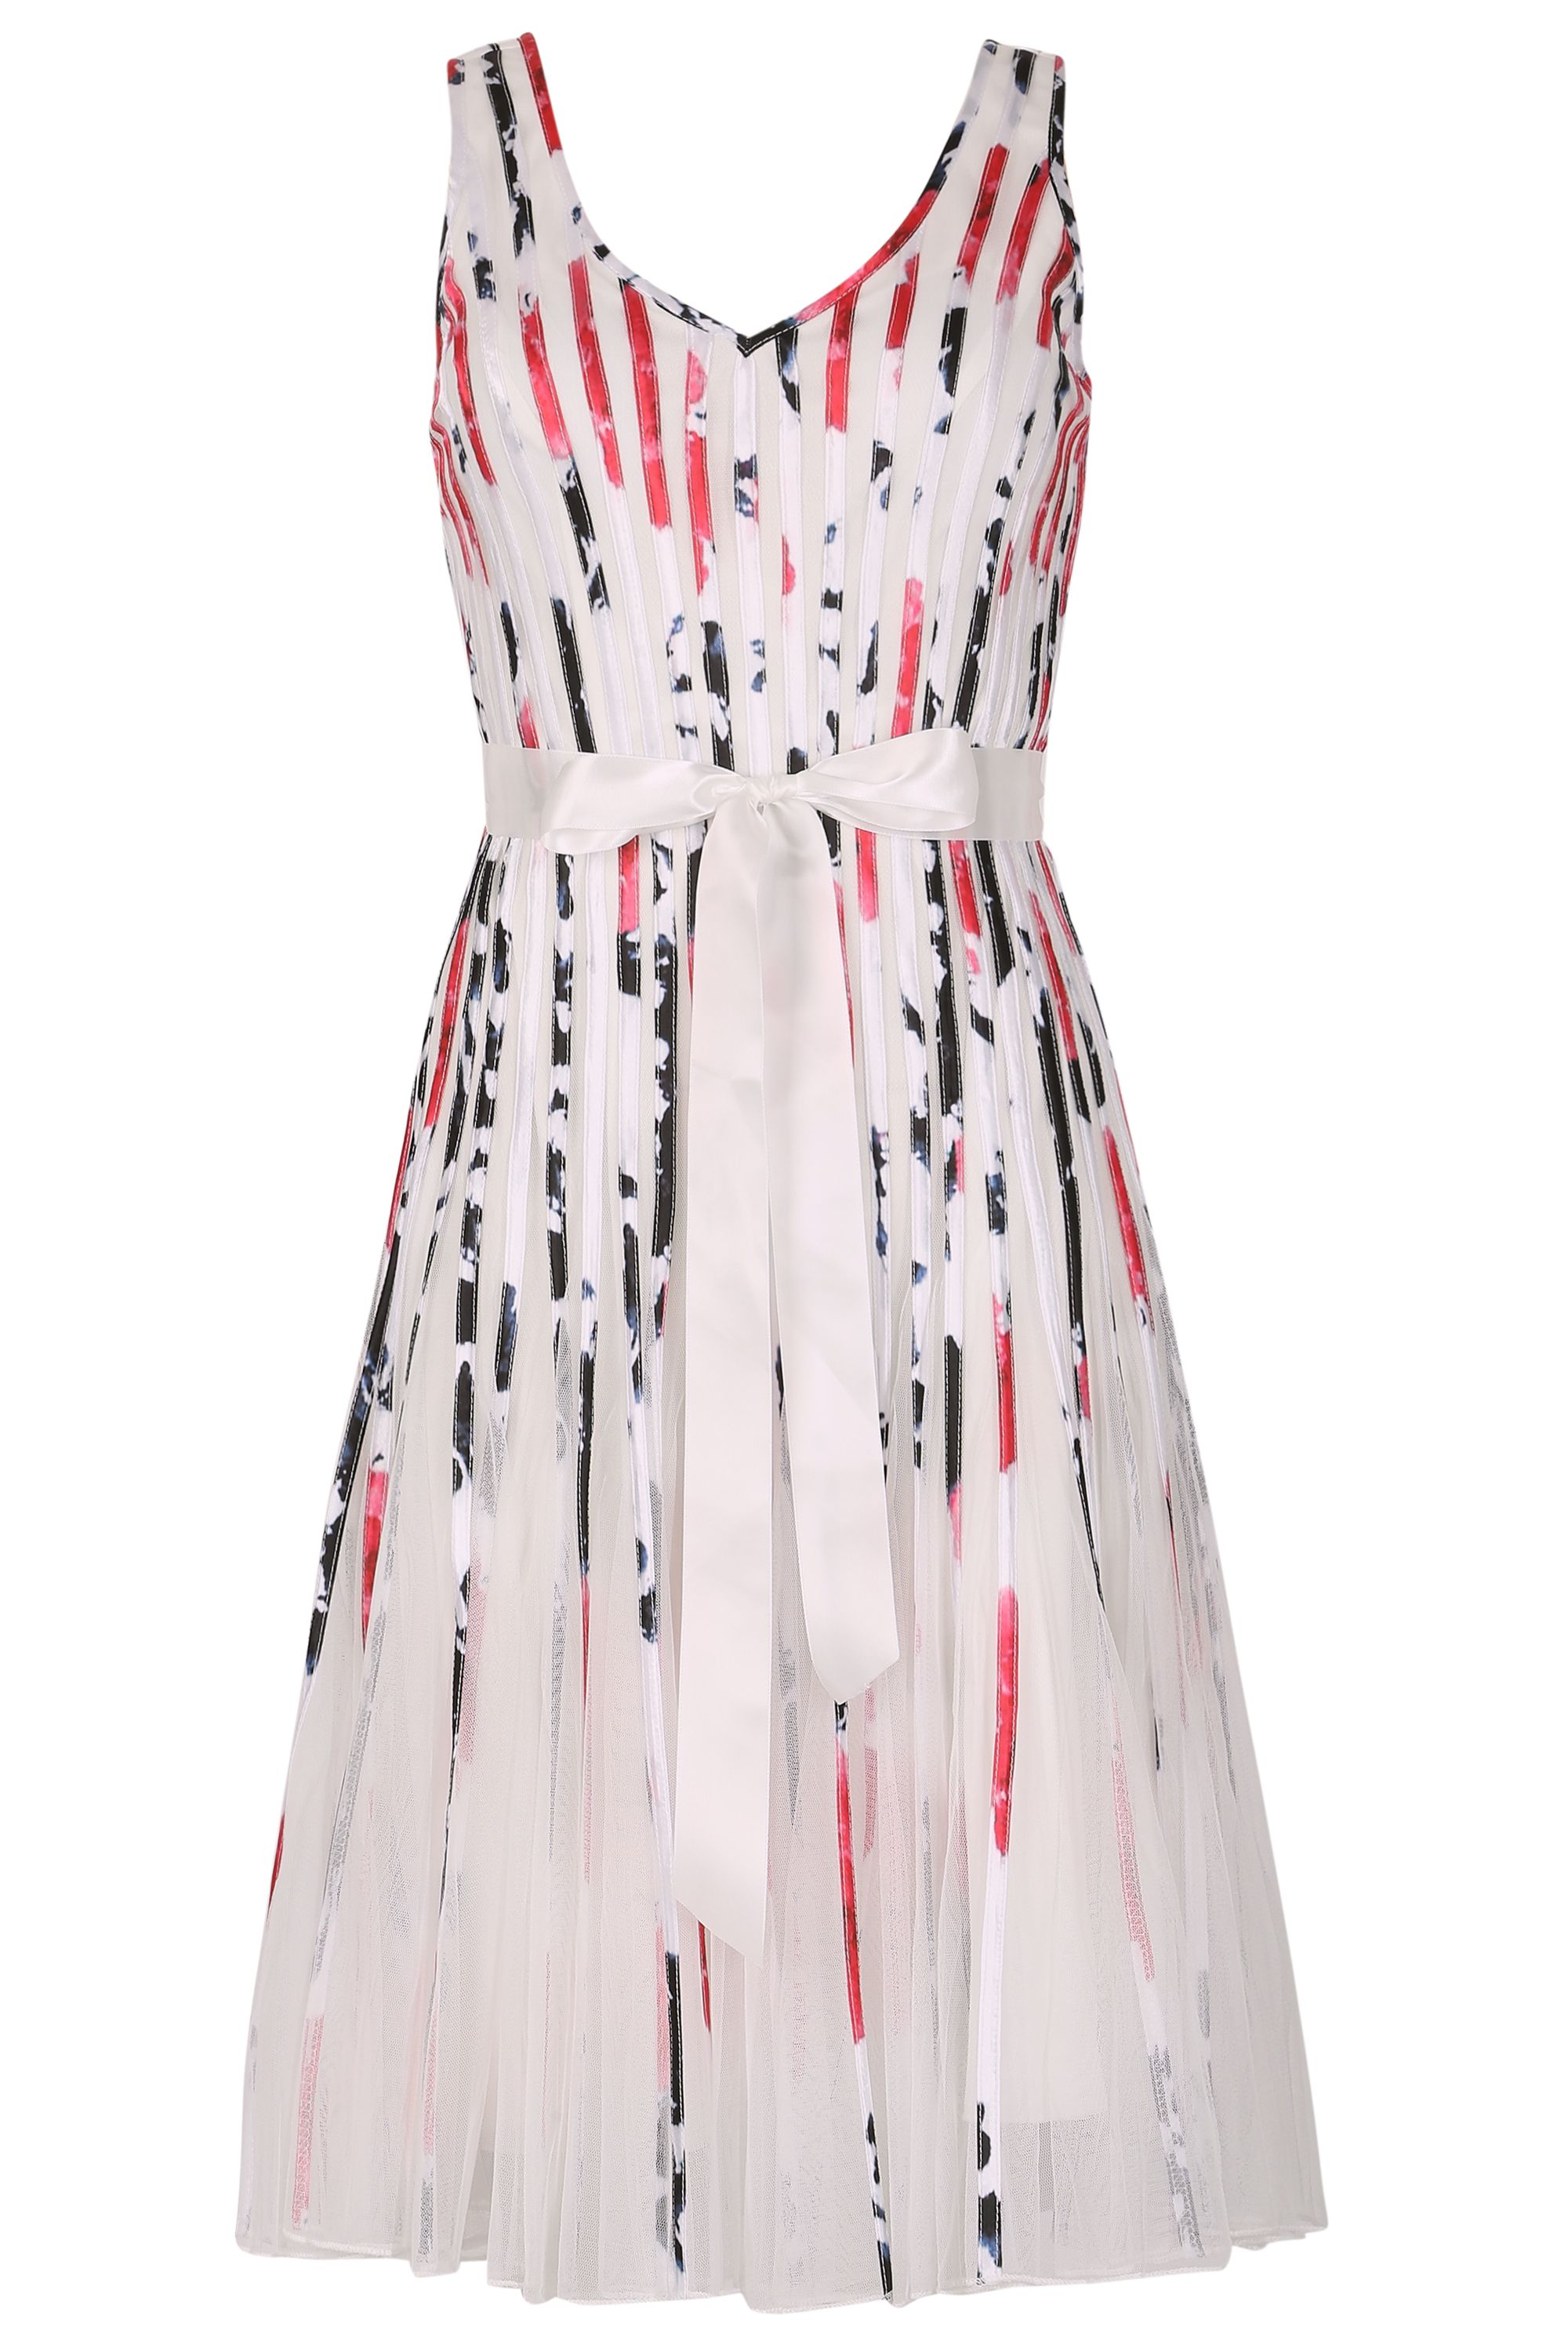 Izabel London Ribbon Stripe Dress With Mesh Skirt, Multi-Coloured